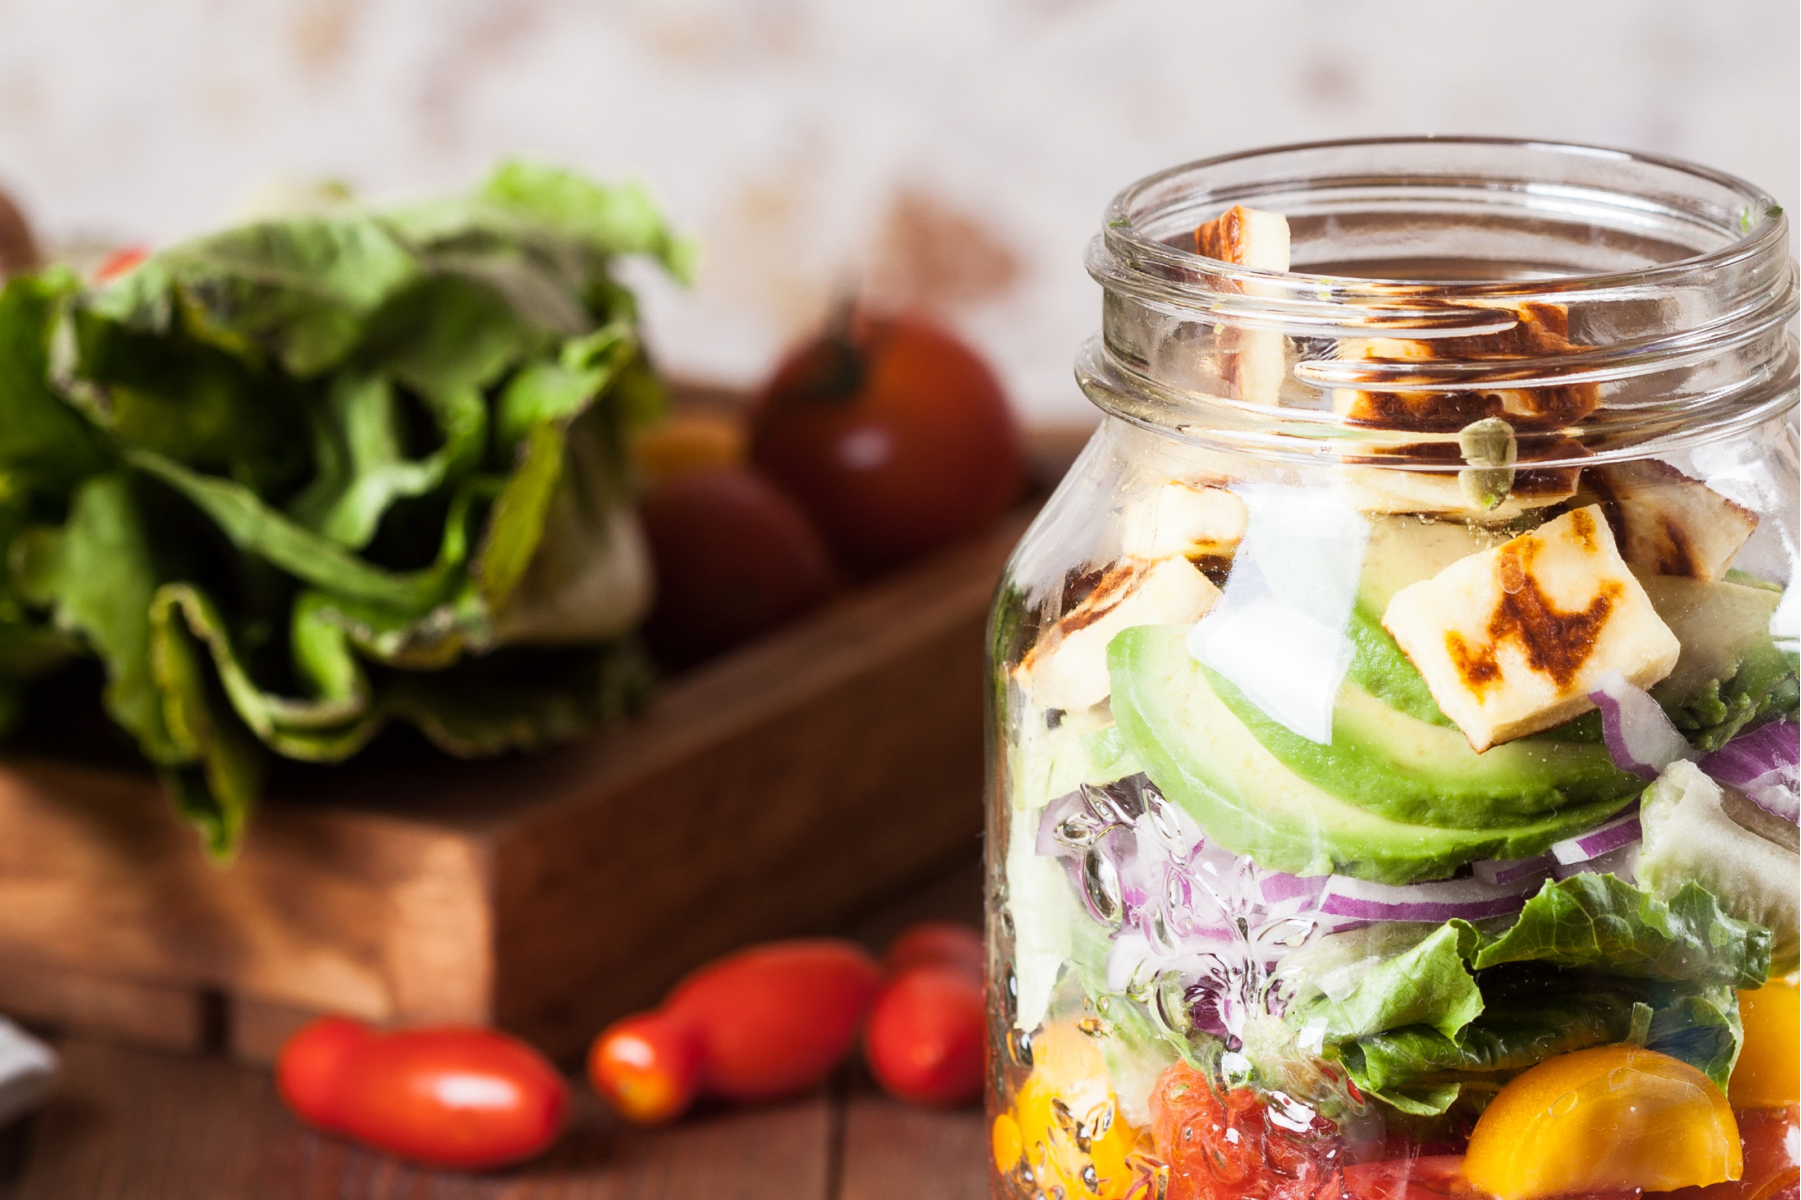 Immunonutrition: what to include in your diet to strengthen your immune system?